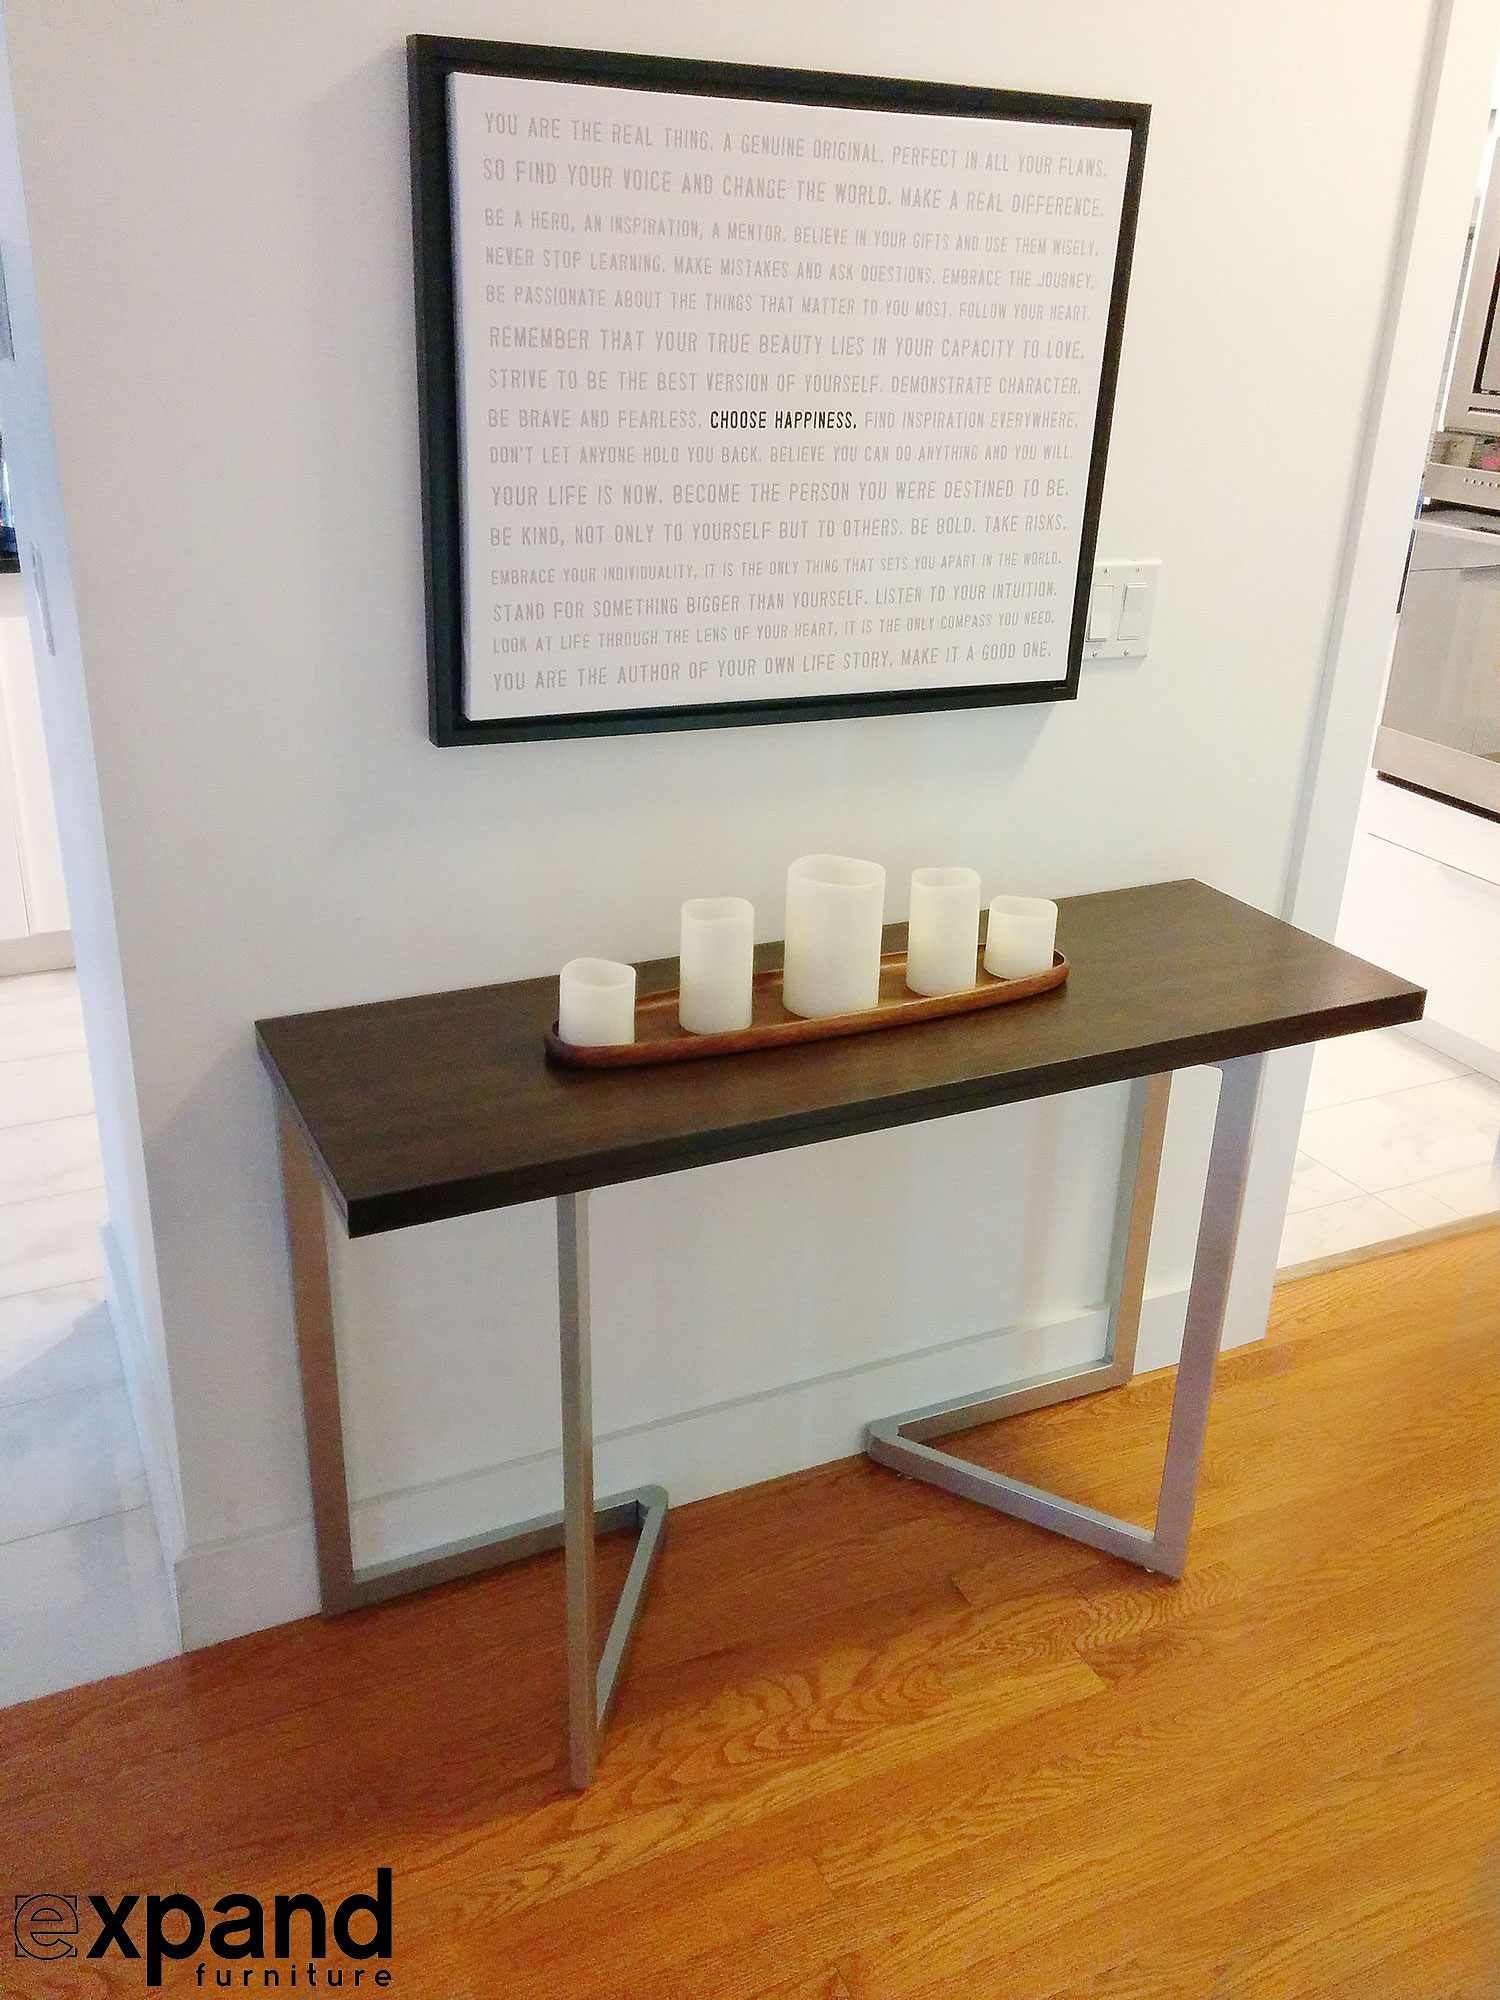 transforming console to table | expand furniture